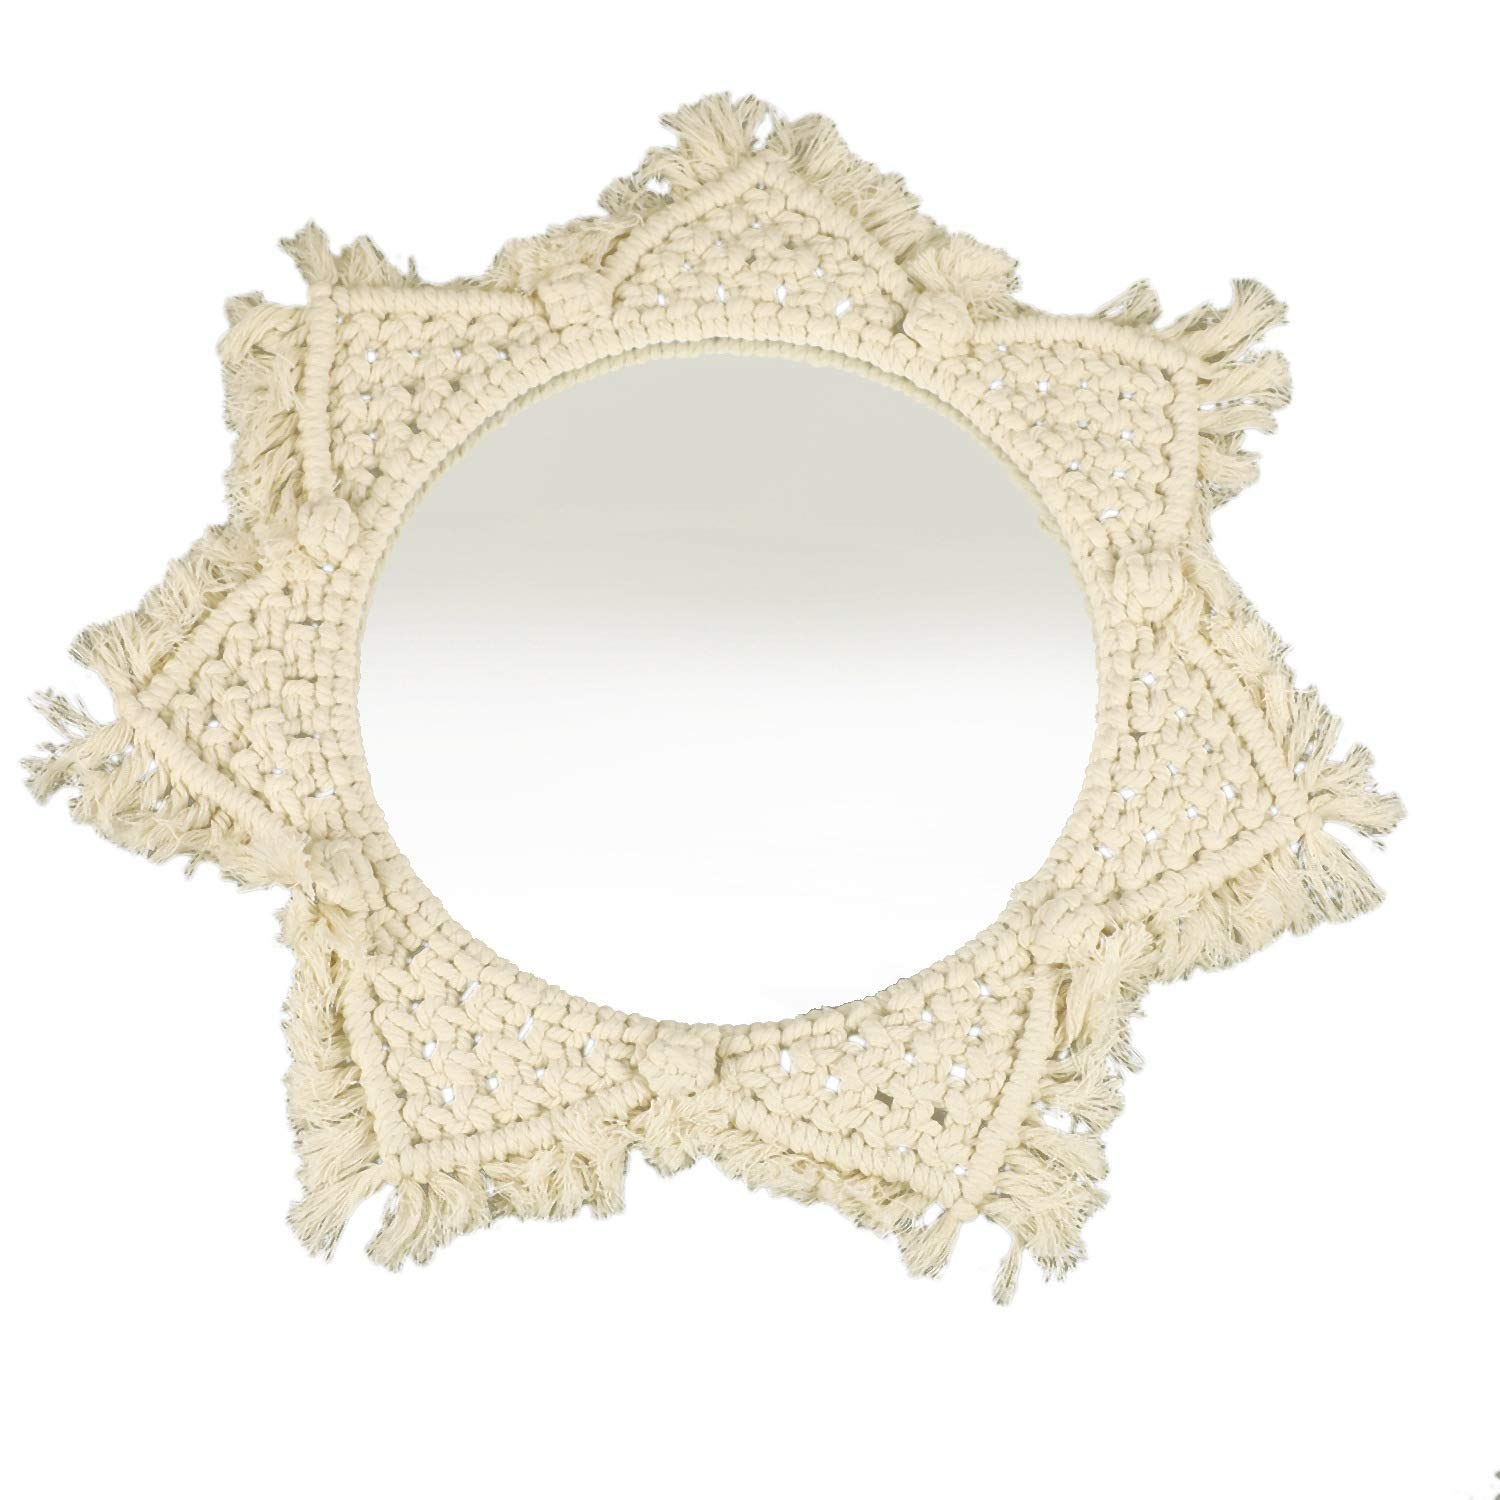 GUOCAO Macrame Mirror Handmade Now on sale Tapestry Makeup Memphis Mall Compact Ho